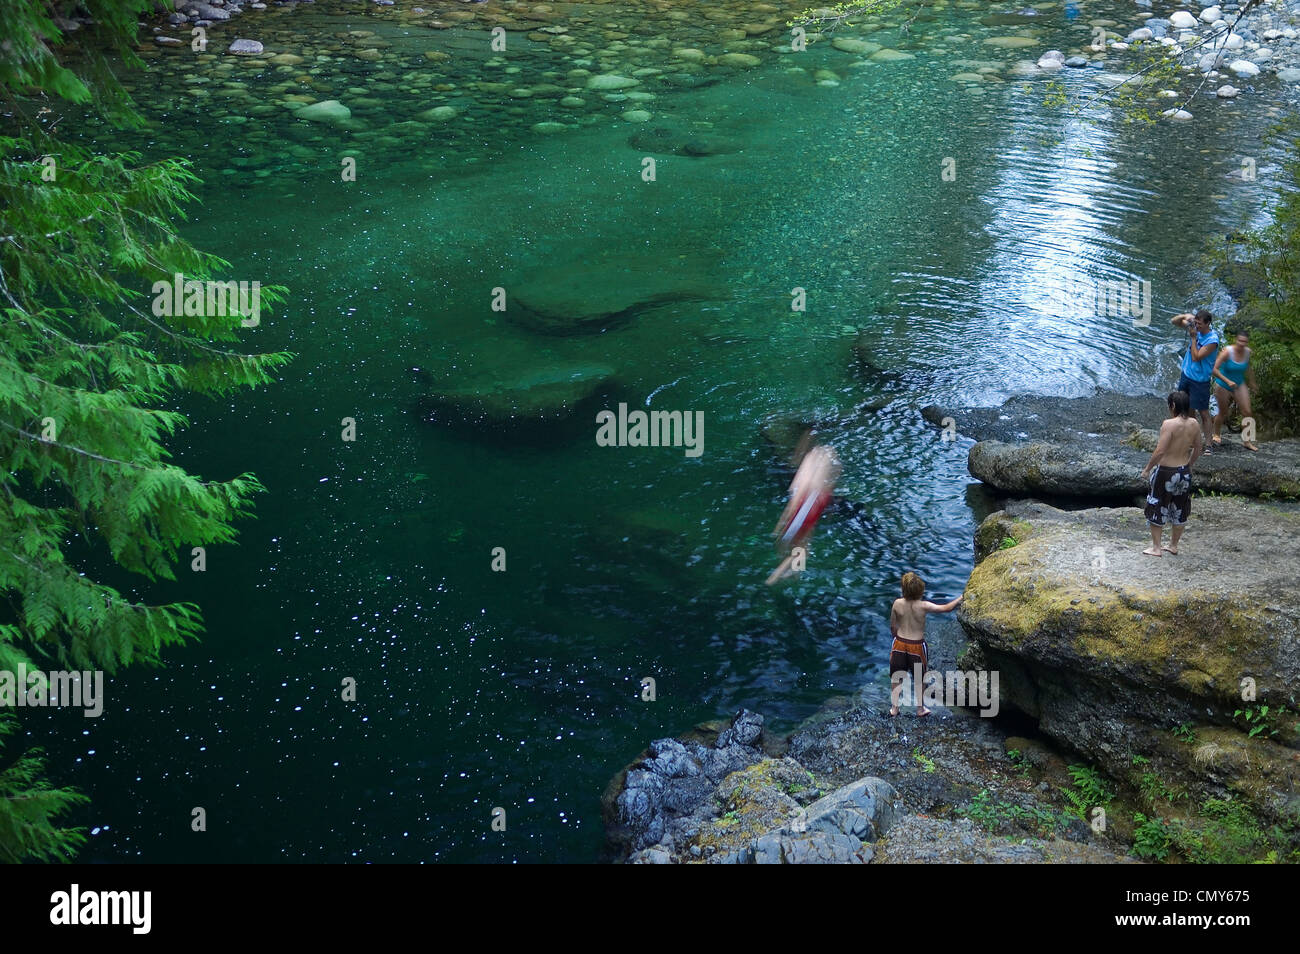 Boys jumping into swimming hole on Englishman river Vancouver Island British Columbia Canada - Stock Image